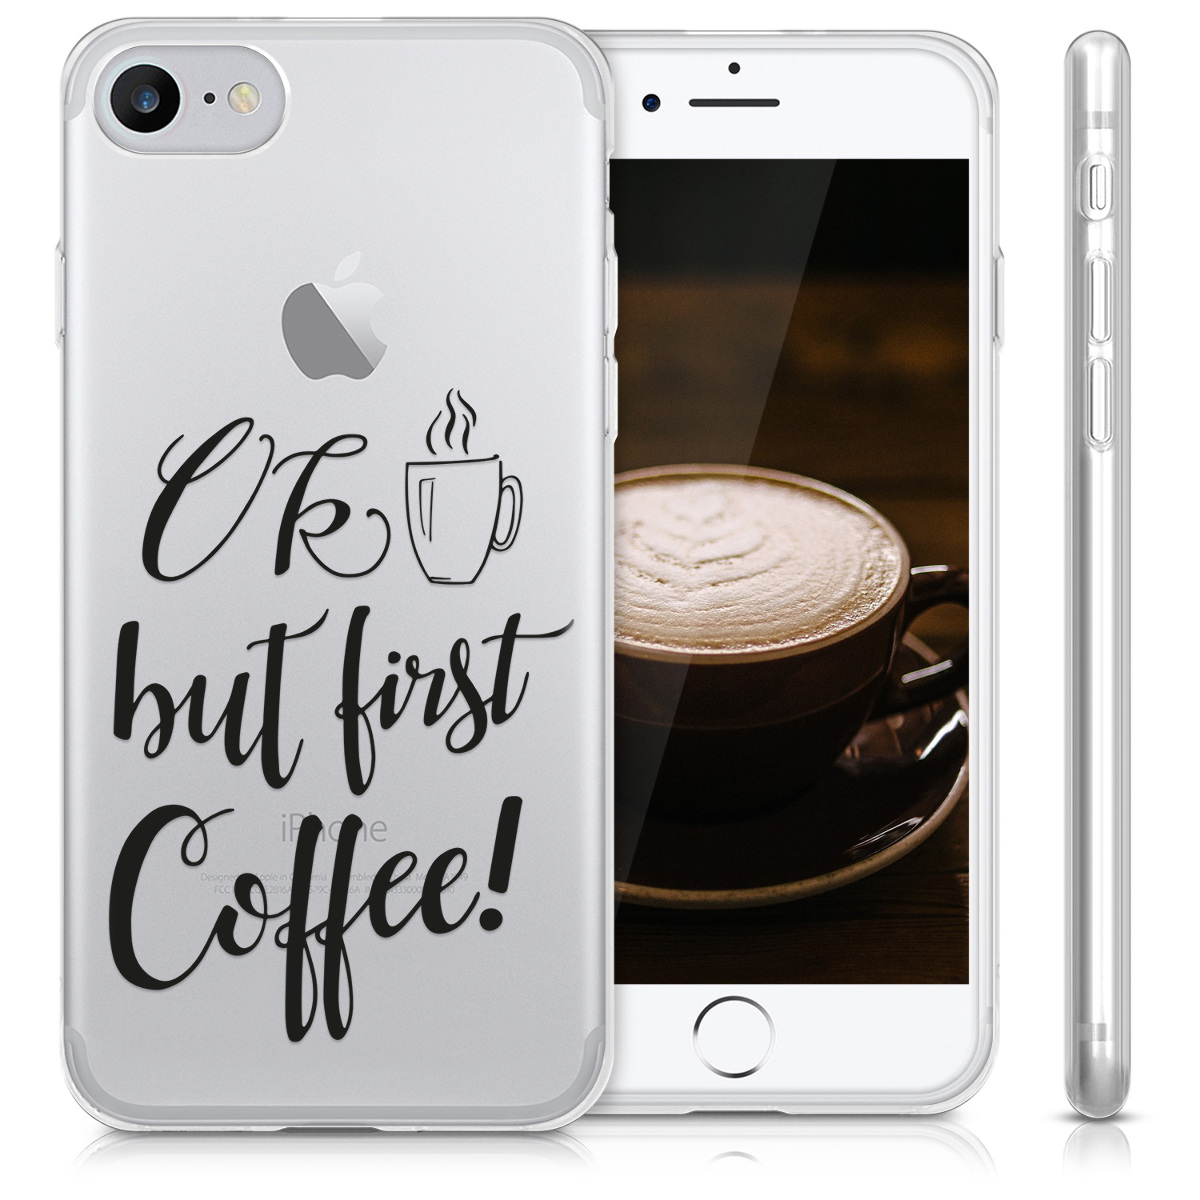 handyh lle f r apple iphone 7 8 h lle handy case cover. Black Bedroom Furniture Sets. Home Design Ideas